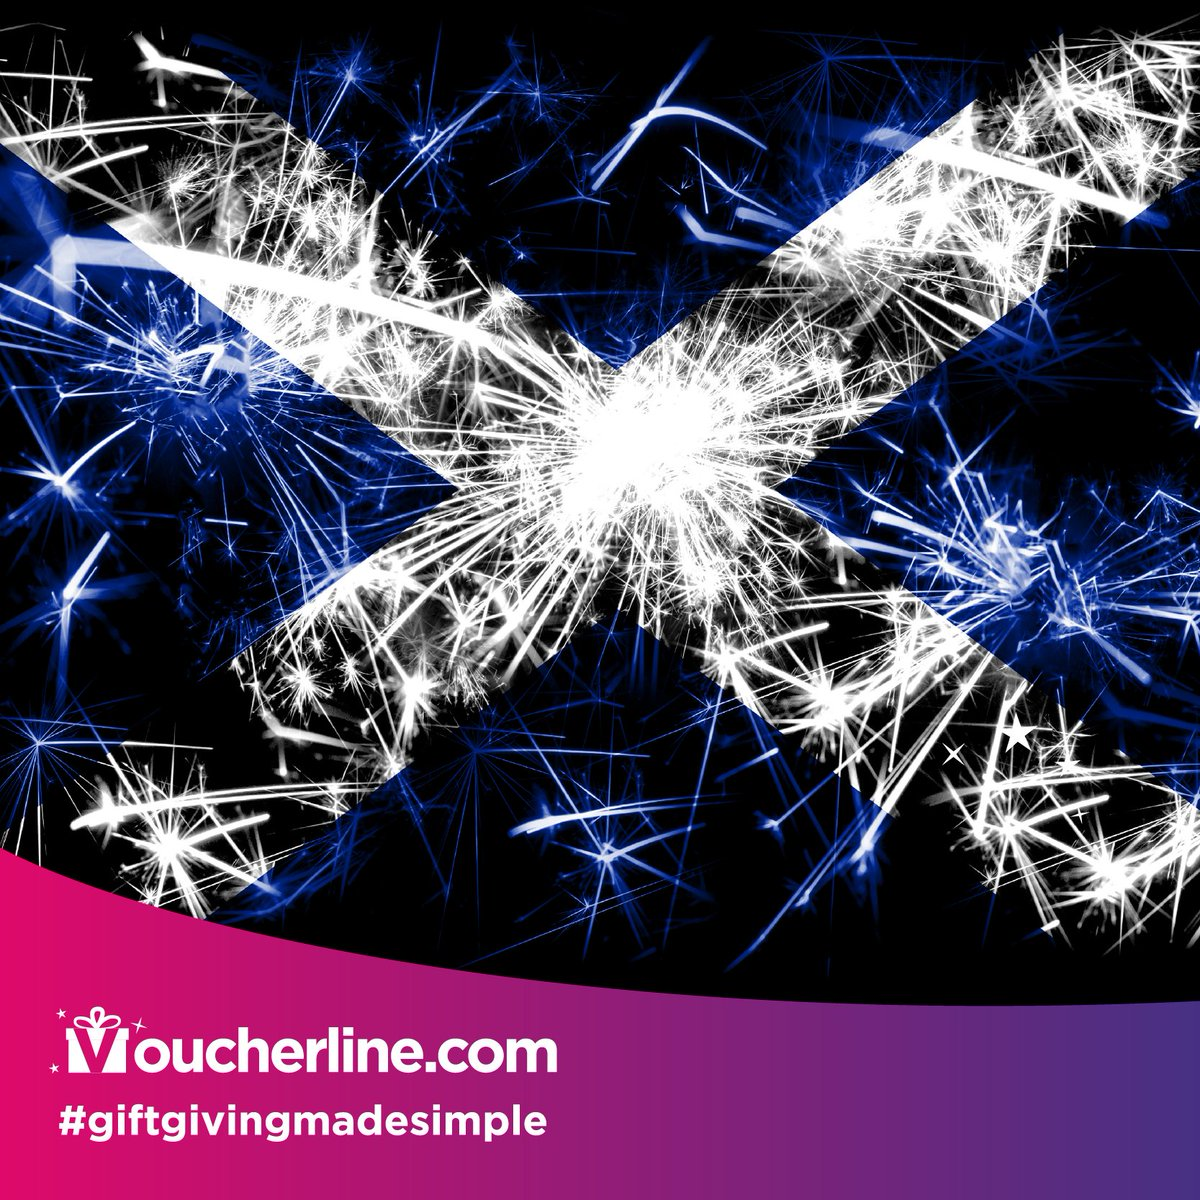 Happy Burns Night From Voucherline!  https://www. voucherline.com      #GiftBetter #Voucherline #GiftGivingMadeSimple #GiftCards #Rewards  https://www. voucherline.com     <br>http://pic.twitter.com/rF7w6O8hNl